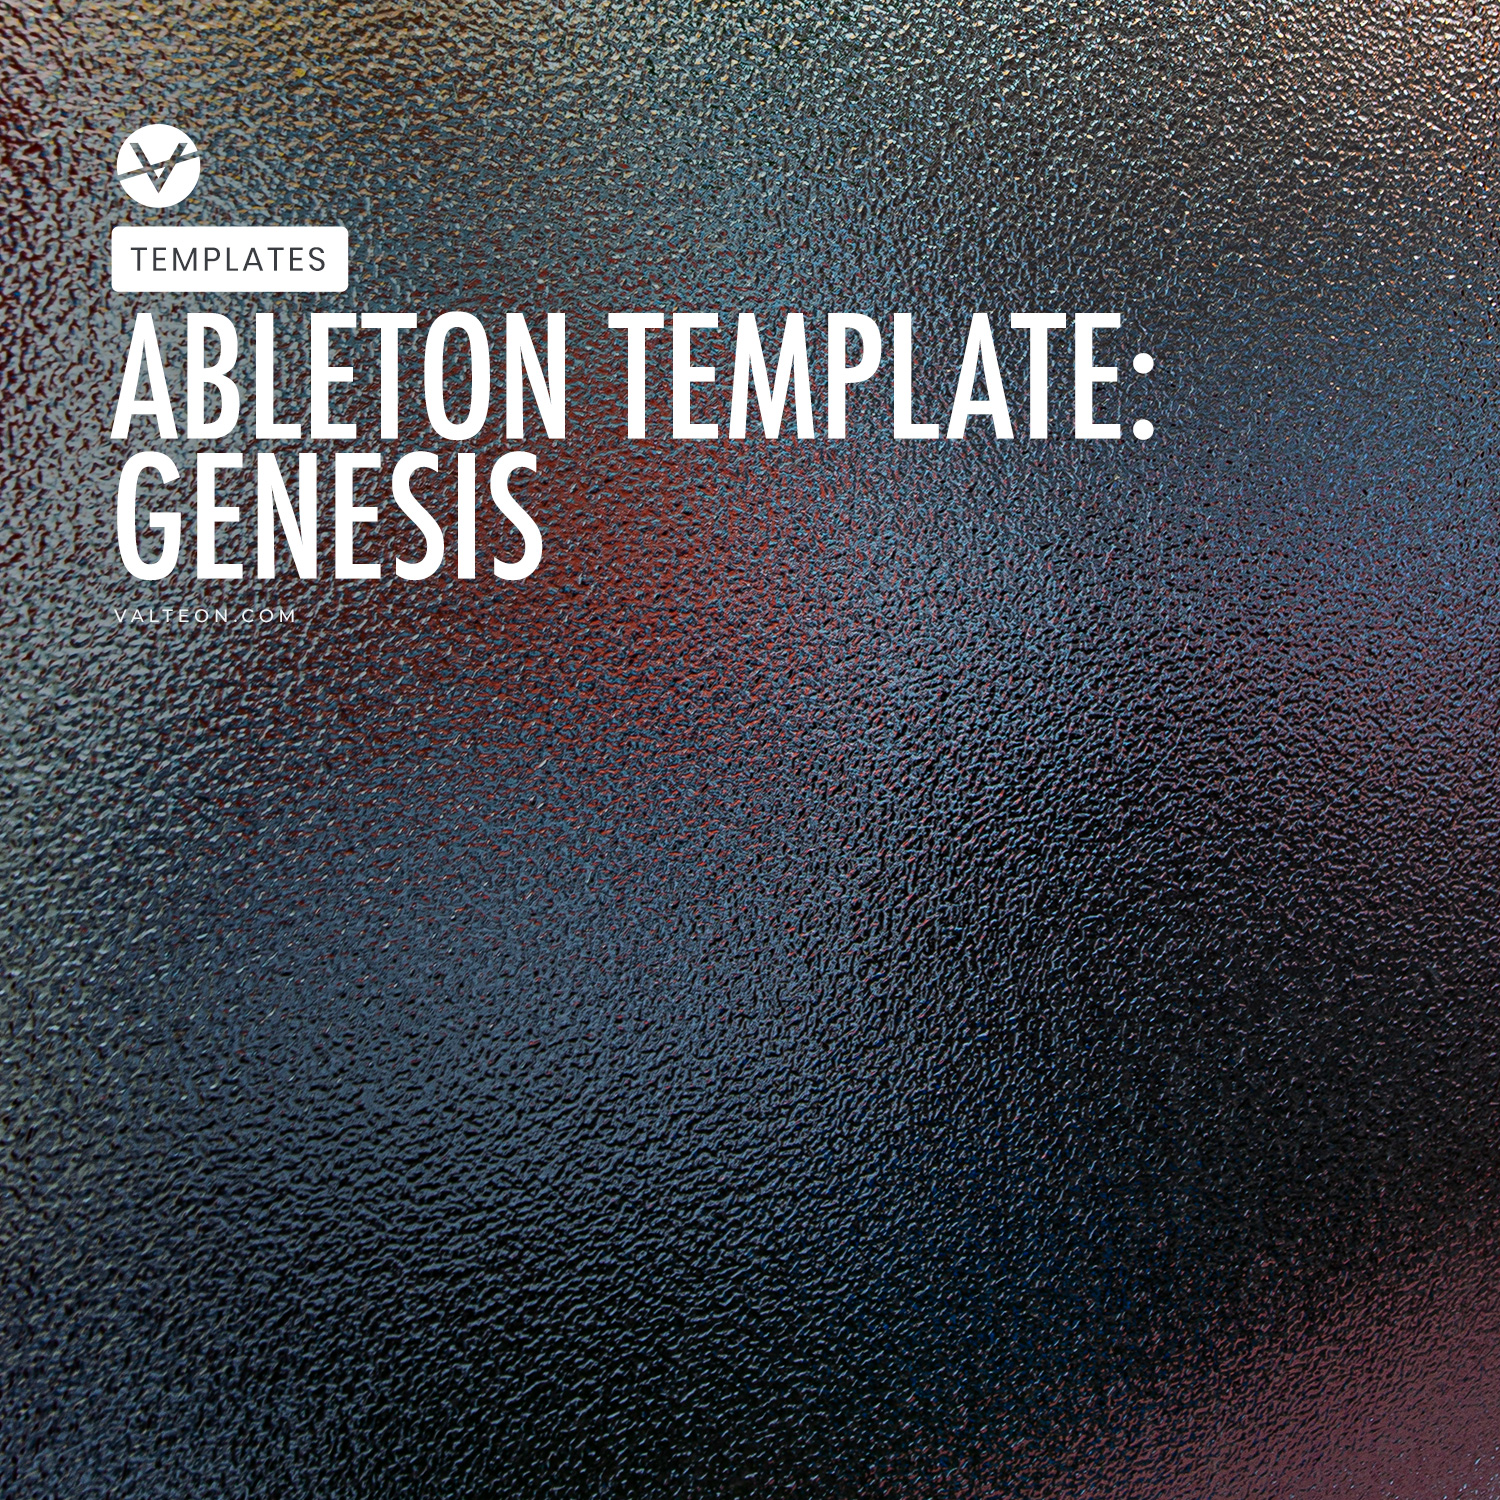 Genesis - Uplifting Trance Template for Ableton Live